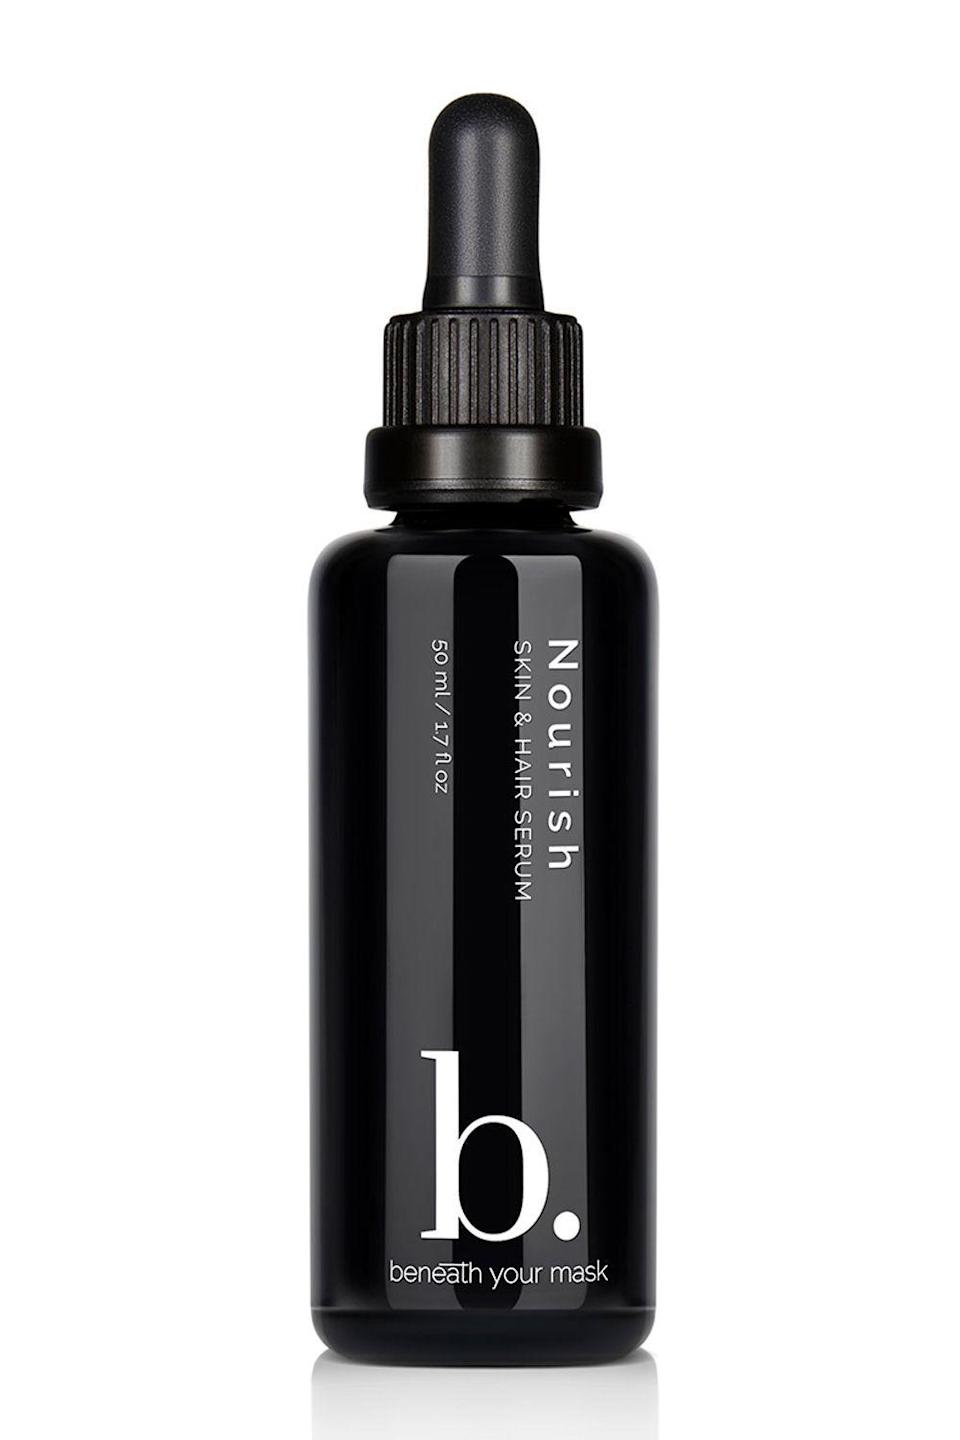 """<p><strong>Beneath Your Mask</strong></p><p>credobeauty.com</p><p><strong>$60.00</strong></p><p><a href=""""https://go.redirectingat.com?id=74968X1596630&url=https%3A%2F%2Fcredobeauty.com%2Fproducts%2Fnourish-skin-hair-serum&sref=https%3A%2F%2Fwww.cosmopolitan.com%2Fstyle-beauty%2Fbeauty%2Fg33473200%2Fbest-organic-hair-products%2F"""" rel=""""nofollow noopener"""" target=""""_blank"""" data-ylk=""""slk:Shop Now"""" class=""""link rapid-noclick-resp"""">Shop Now</a></p><p>This multitasking hair and skin serum is packed with a bunch of <a href=""""https://www.cosmopolitan.com/style-beauty/beauty/g25011204/organic-makeup-brands/"""" rel=""""nofollow noopener"""" target=""""_blank"""" data-ylk=""""slk:organic"""" class=""""link rapid-noclick-resp"""">organic</a> oils, like hemp seed, safflower, rosehip, and macadamia nut oils (to name a few). Add a few drops to damp or dry hair to <strong>nourish dry ends, smooth flyaways, and repair heat damage</strong>, and a few drops to damp skin to give yourself a dewy glow.</p>"""